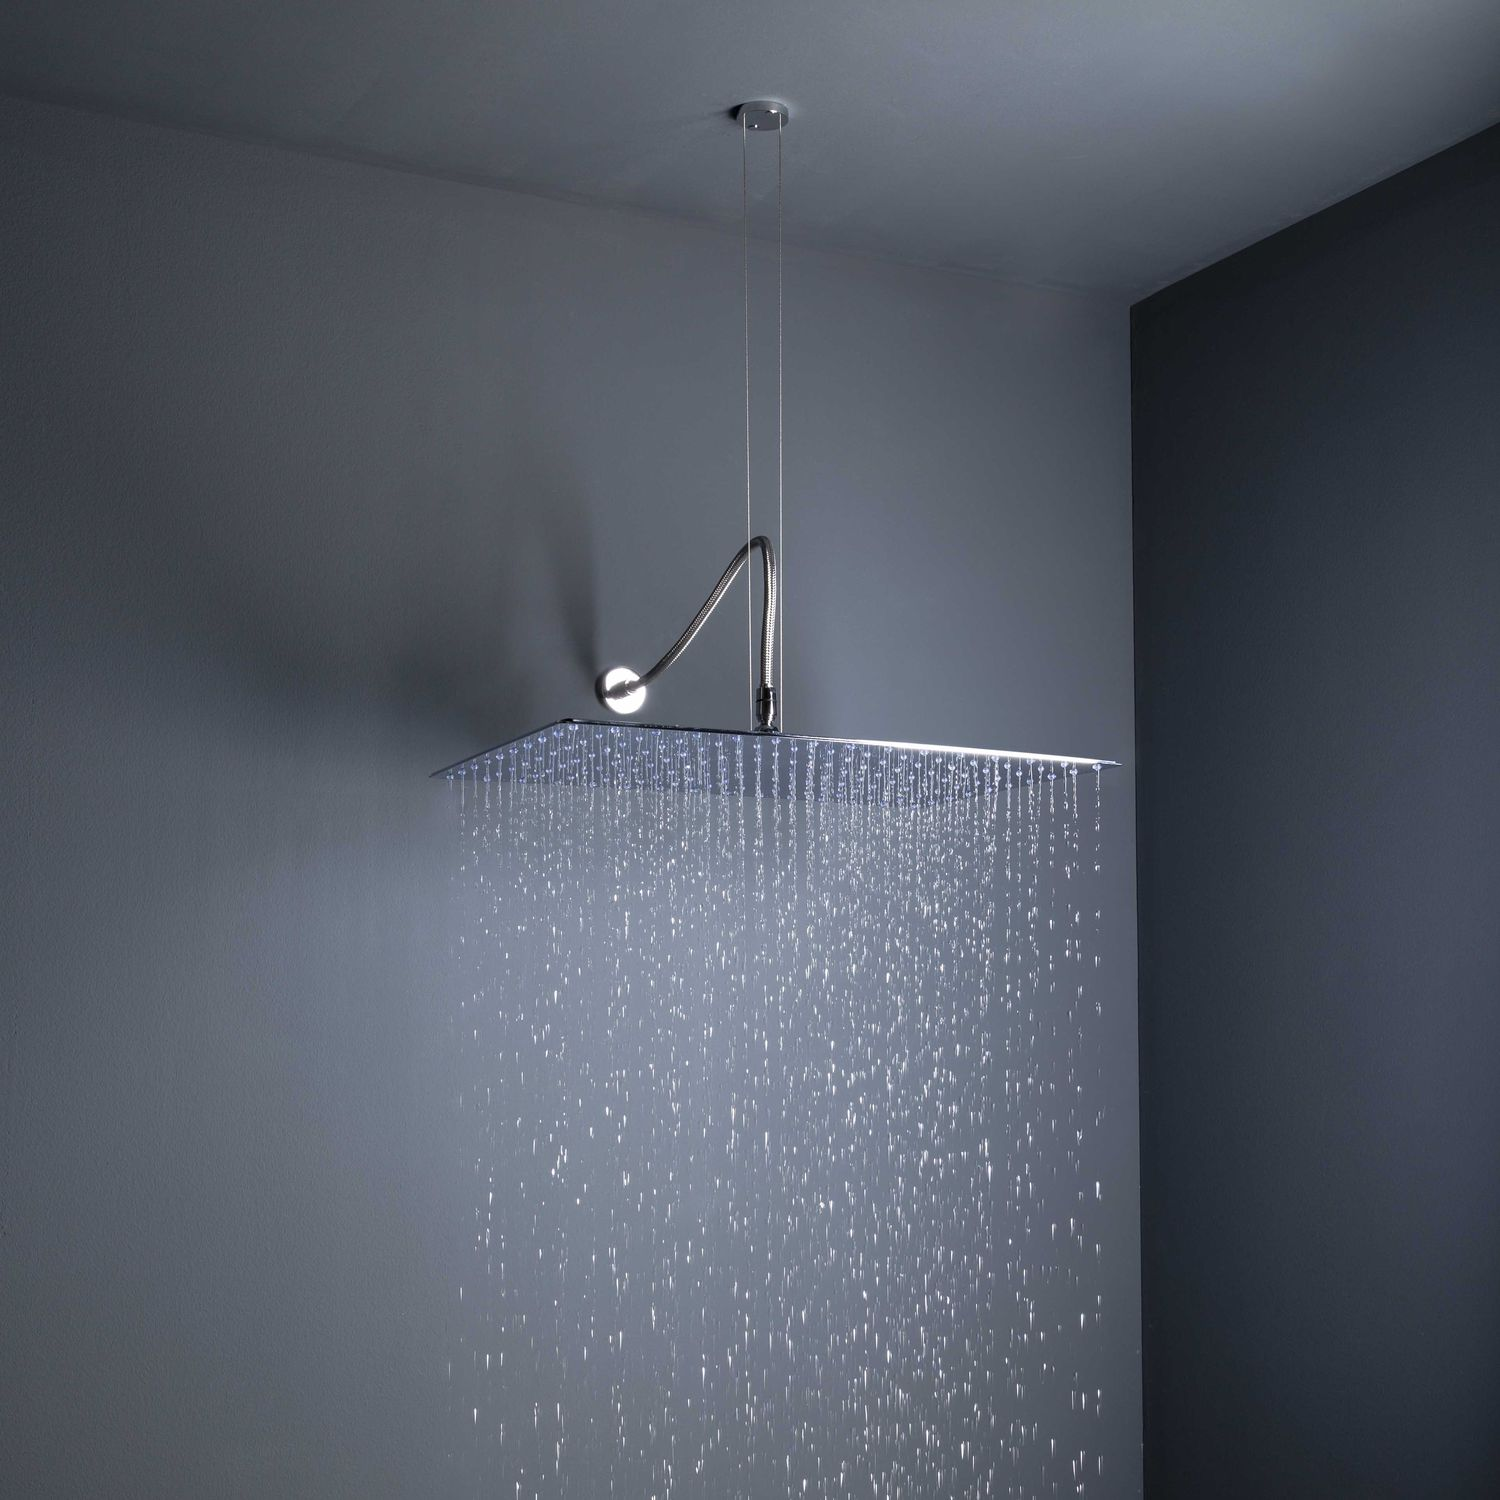 ceiling-mounted shower head / wall-mounted / round / rain - big